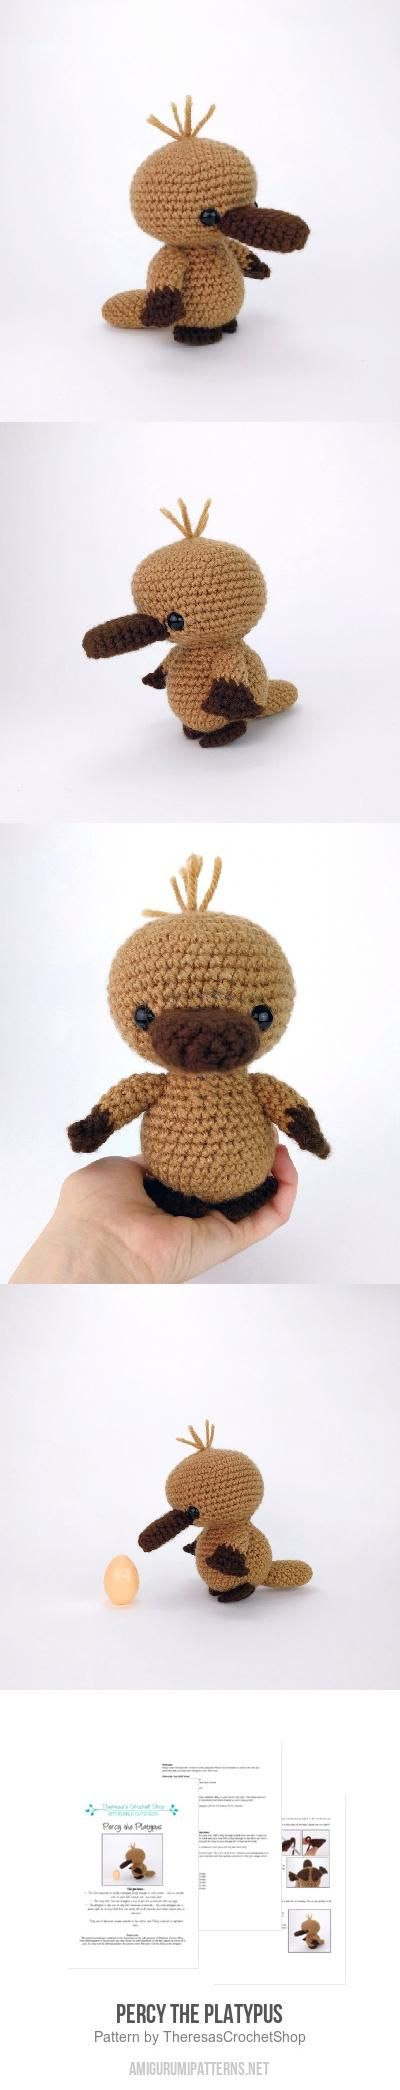 Percy The Platypus Amigurumi Pattern Crochet Some More Crochet